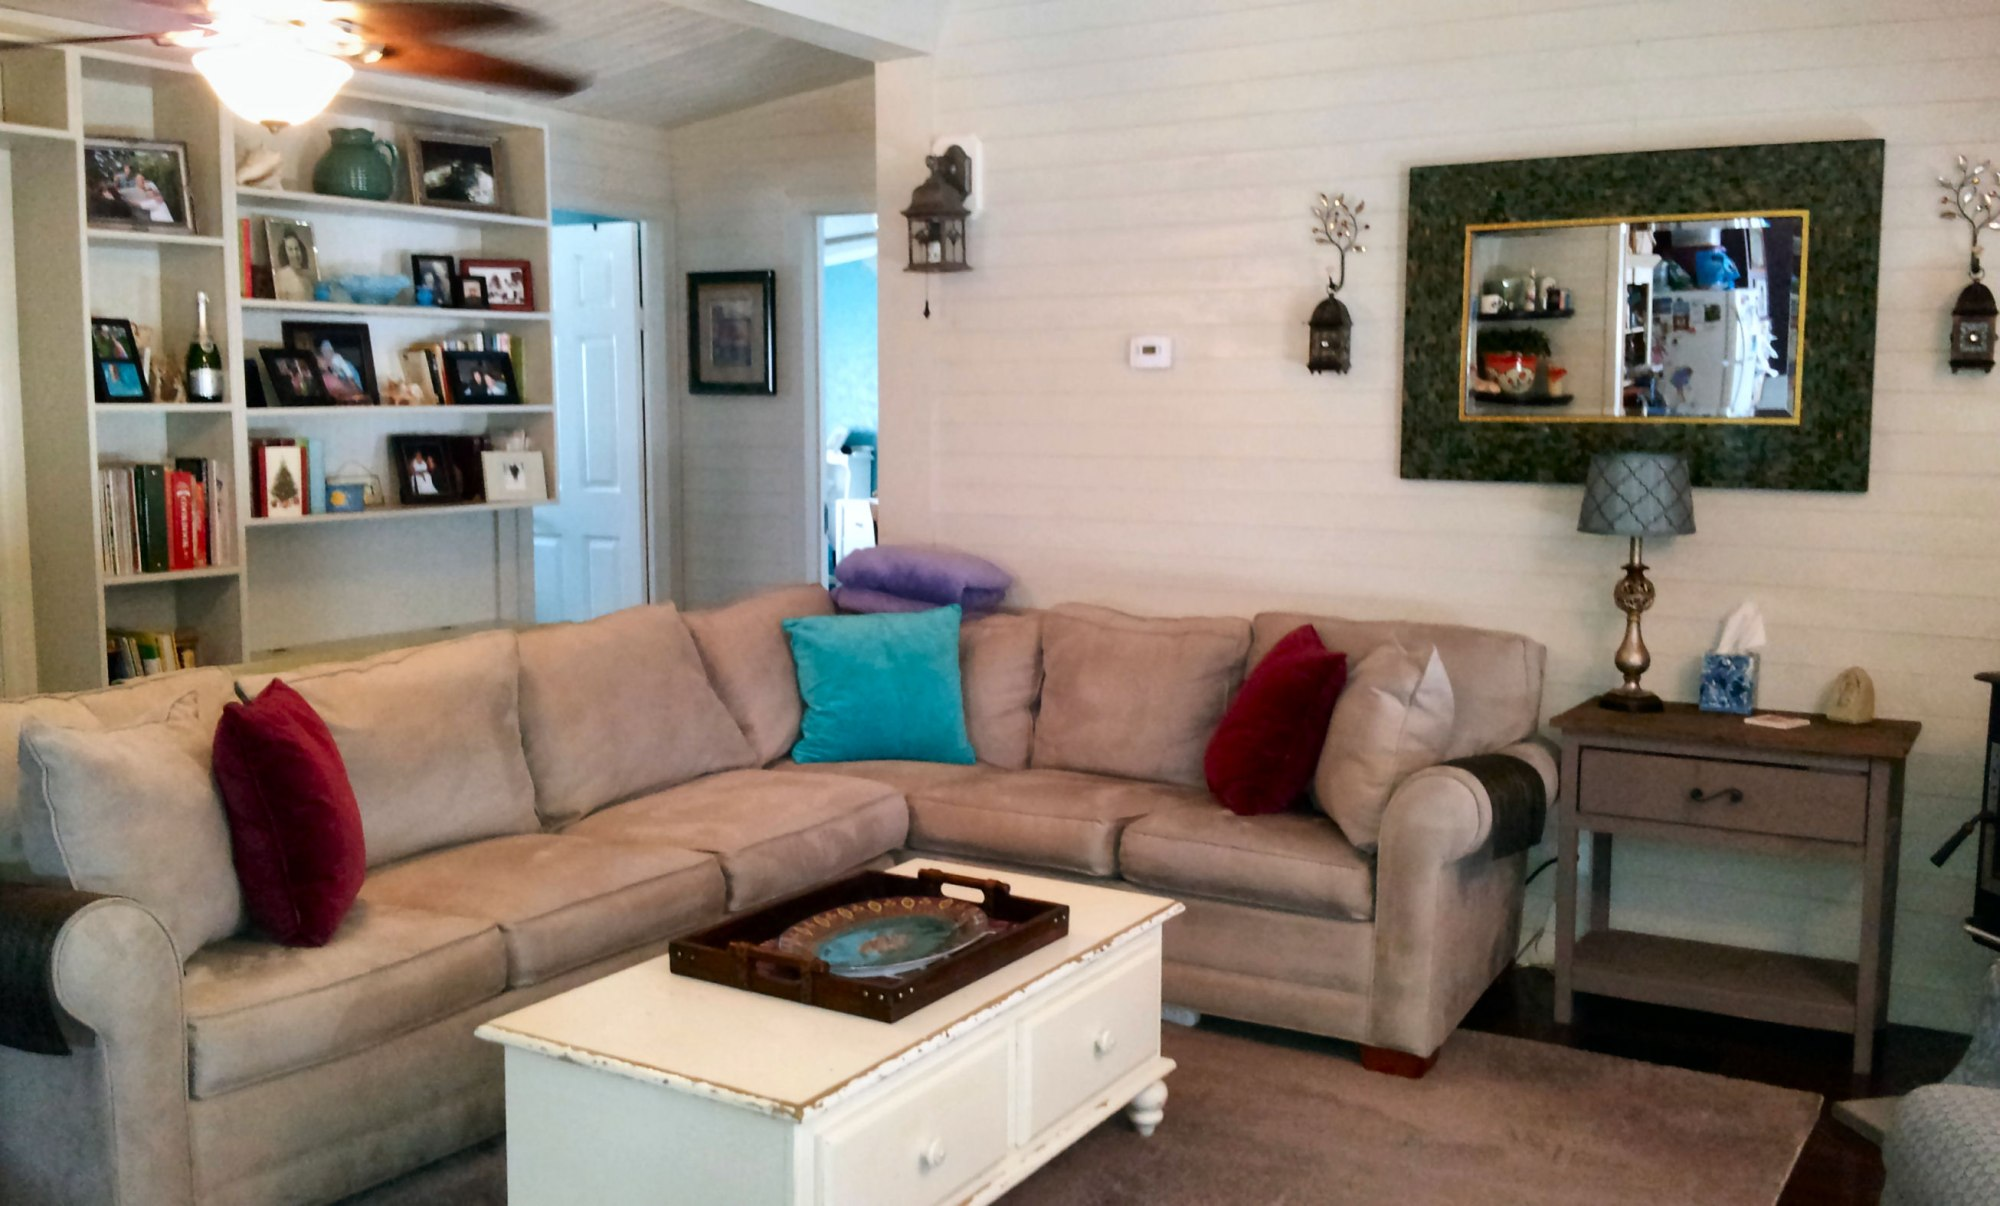 Mobile Home Living Room Remodel The Finale  My Mobile Home Makeover